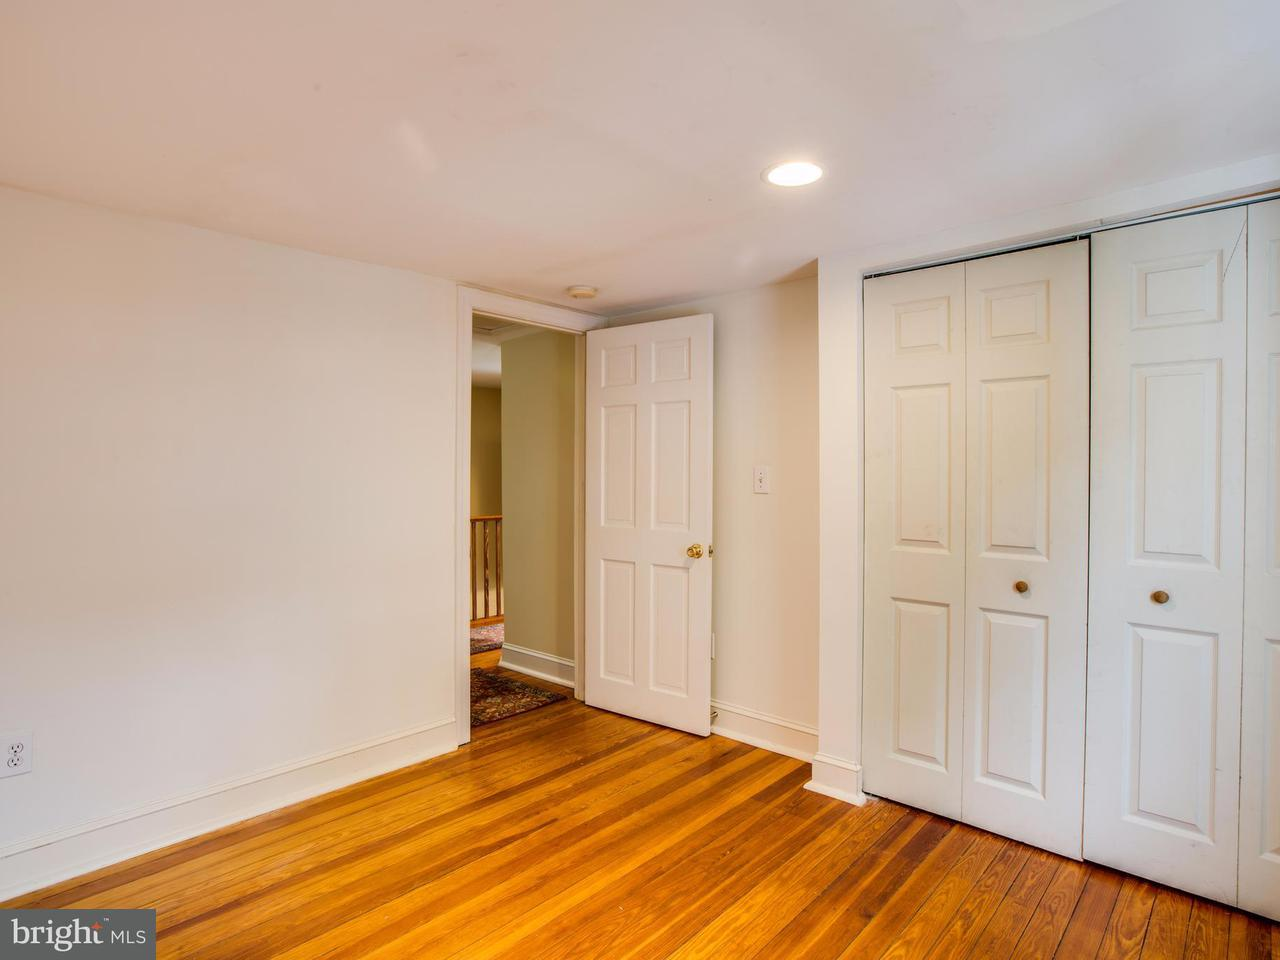 Additional photo for property listing at 1209 Littlepage Street 1209 Littlepage Street Fredericksburg, Virginia 22401 United States